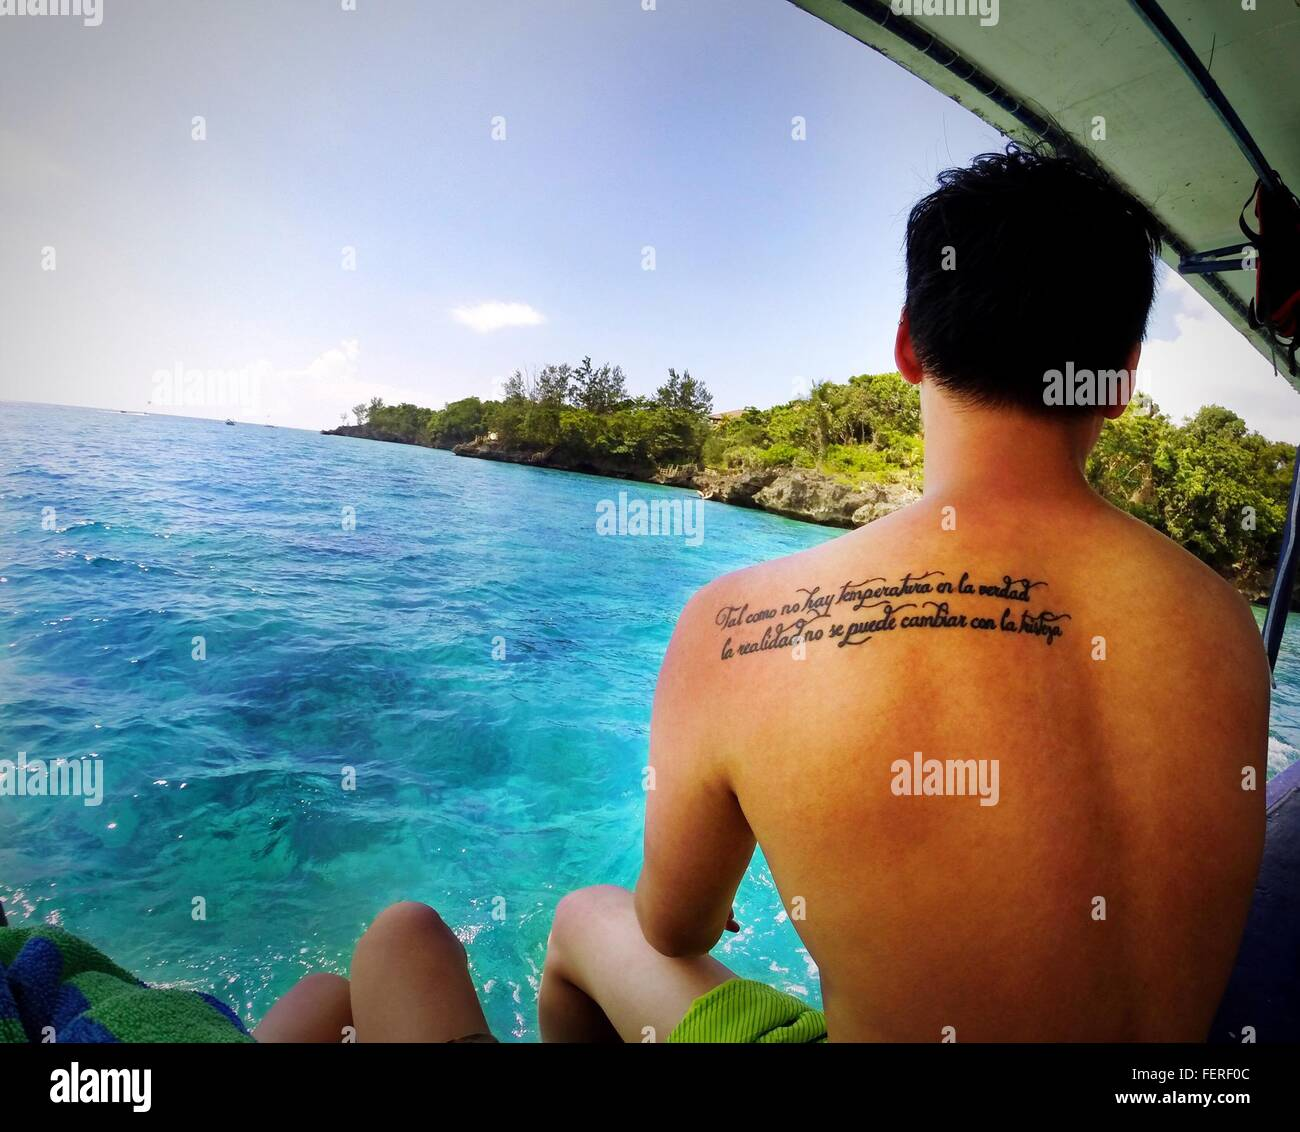 Rear View Of Shirtless Man With Tattoo On Back At Sea - Stock Image